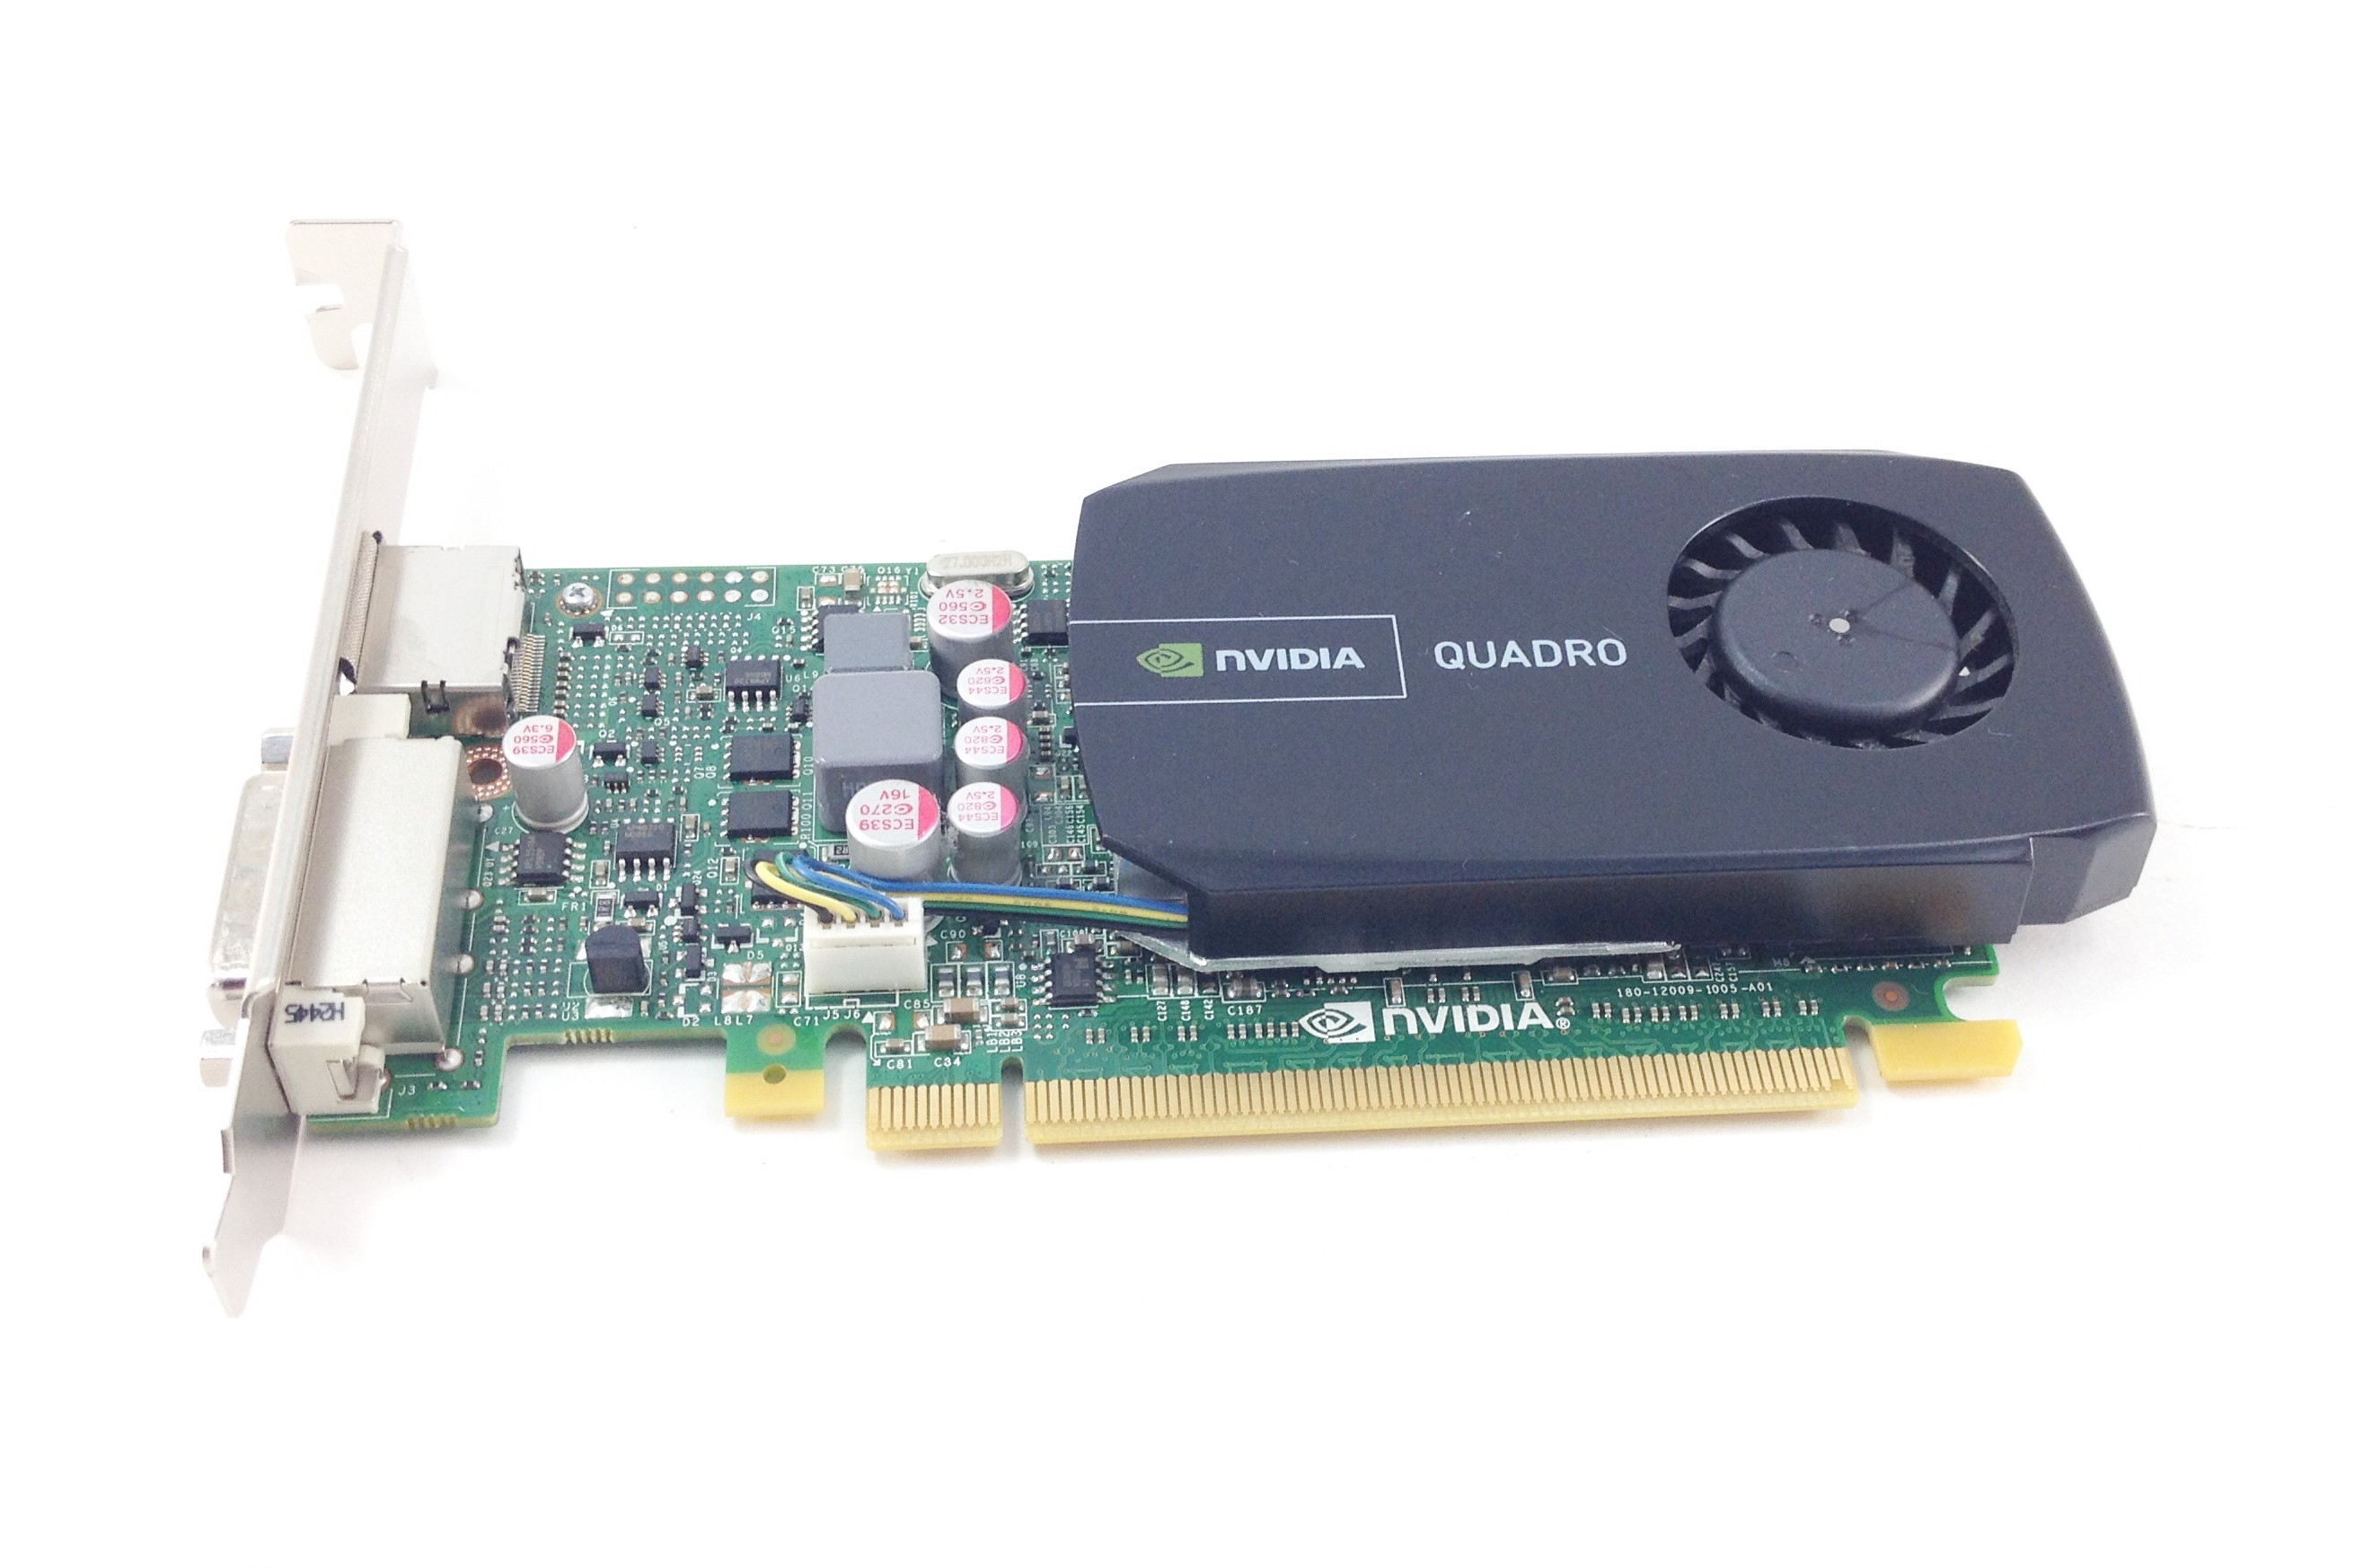 DELL NVIDIA QUADRO 600 PCI-E X16 1GB GDDR3 GRAPHICS CARD (5YGHK)